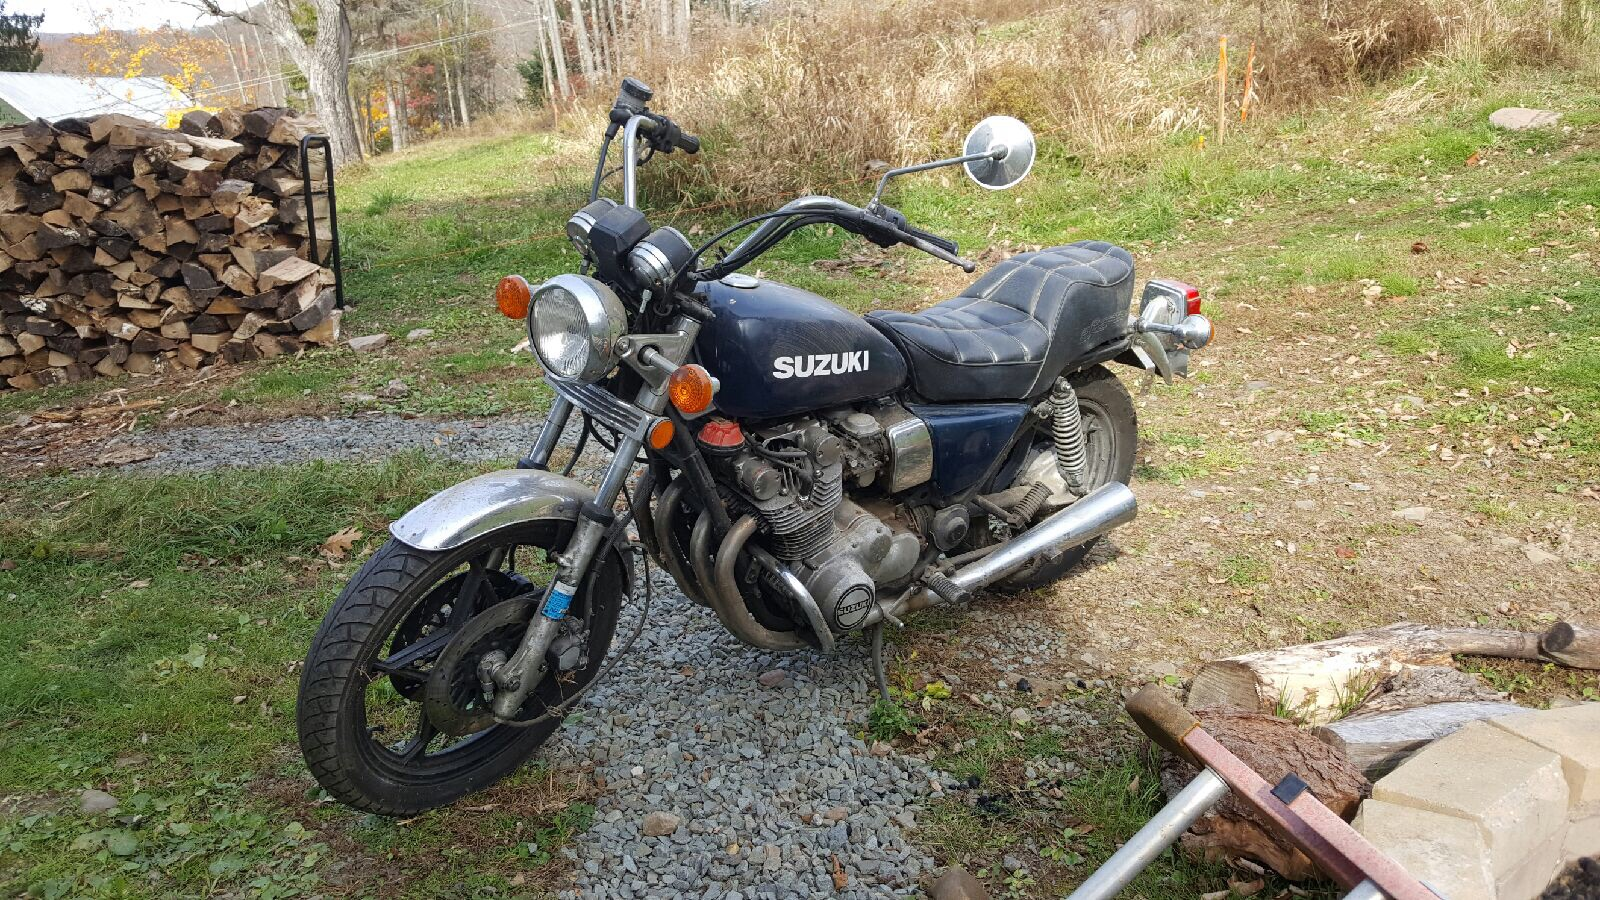 Rich's brother Kenny picked this up for $100 and it runs!  Suzuki GS 850 GL